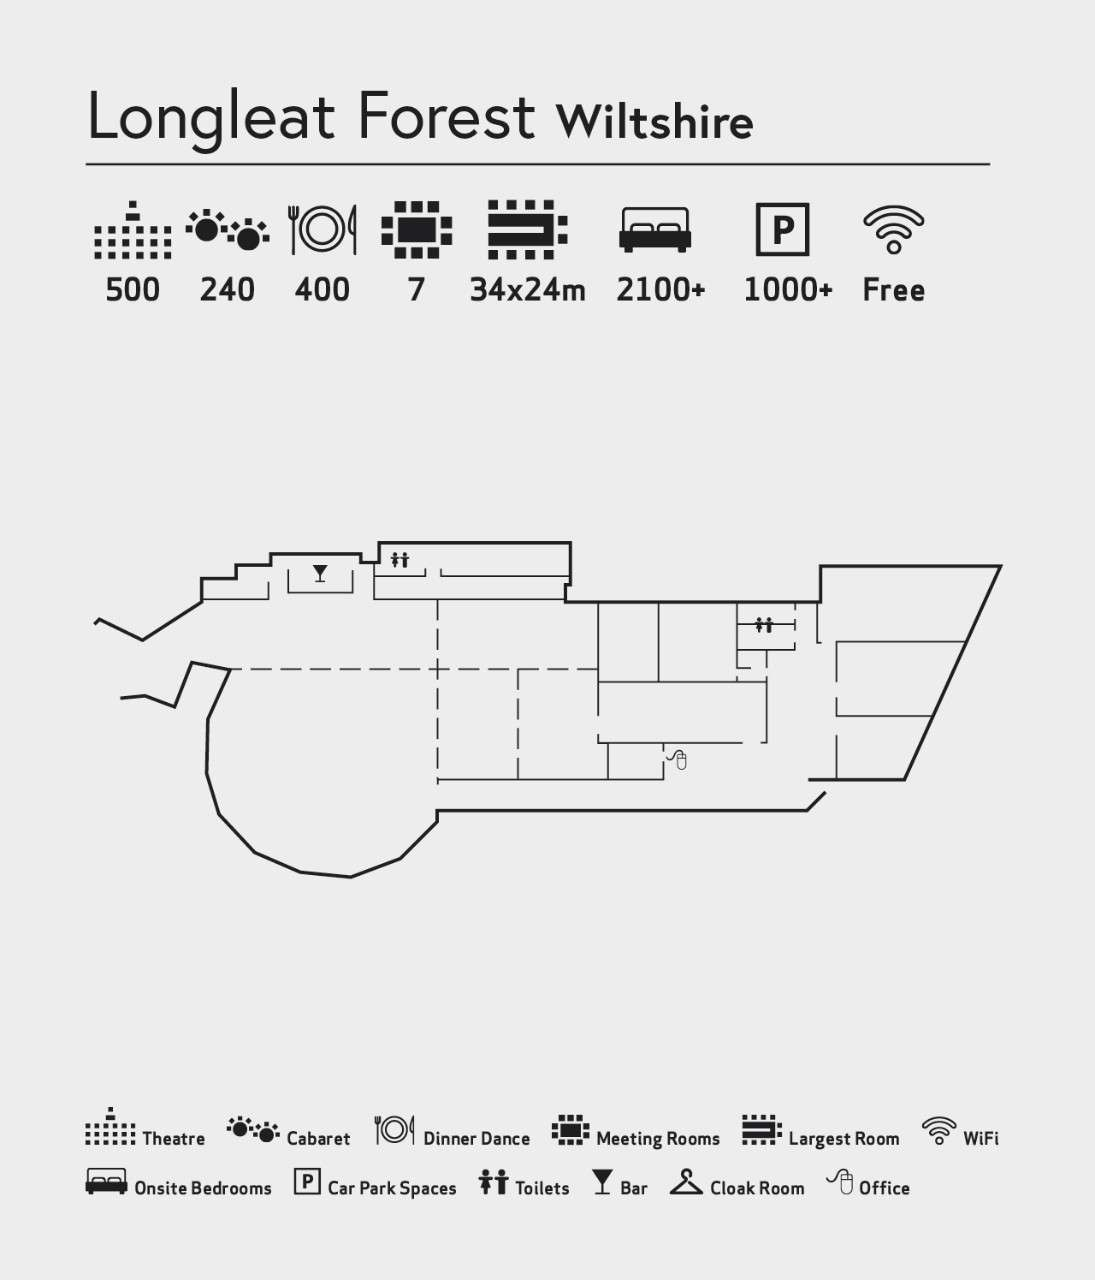 Room layout of The Venue at Longleat Forest